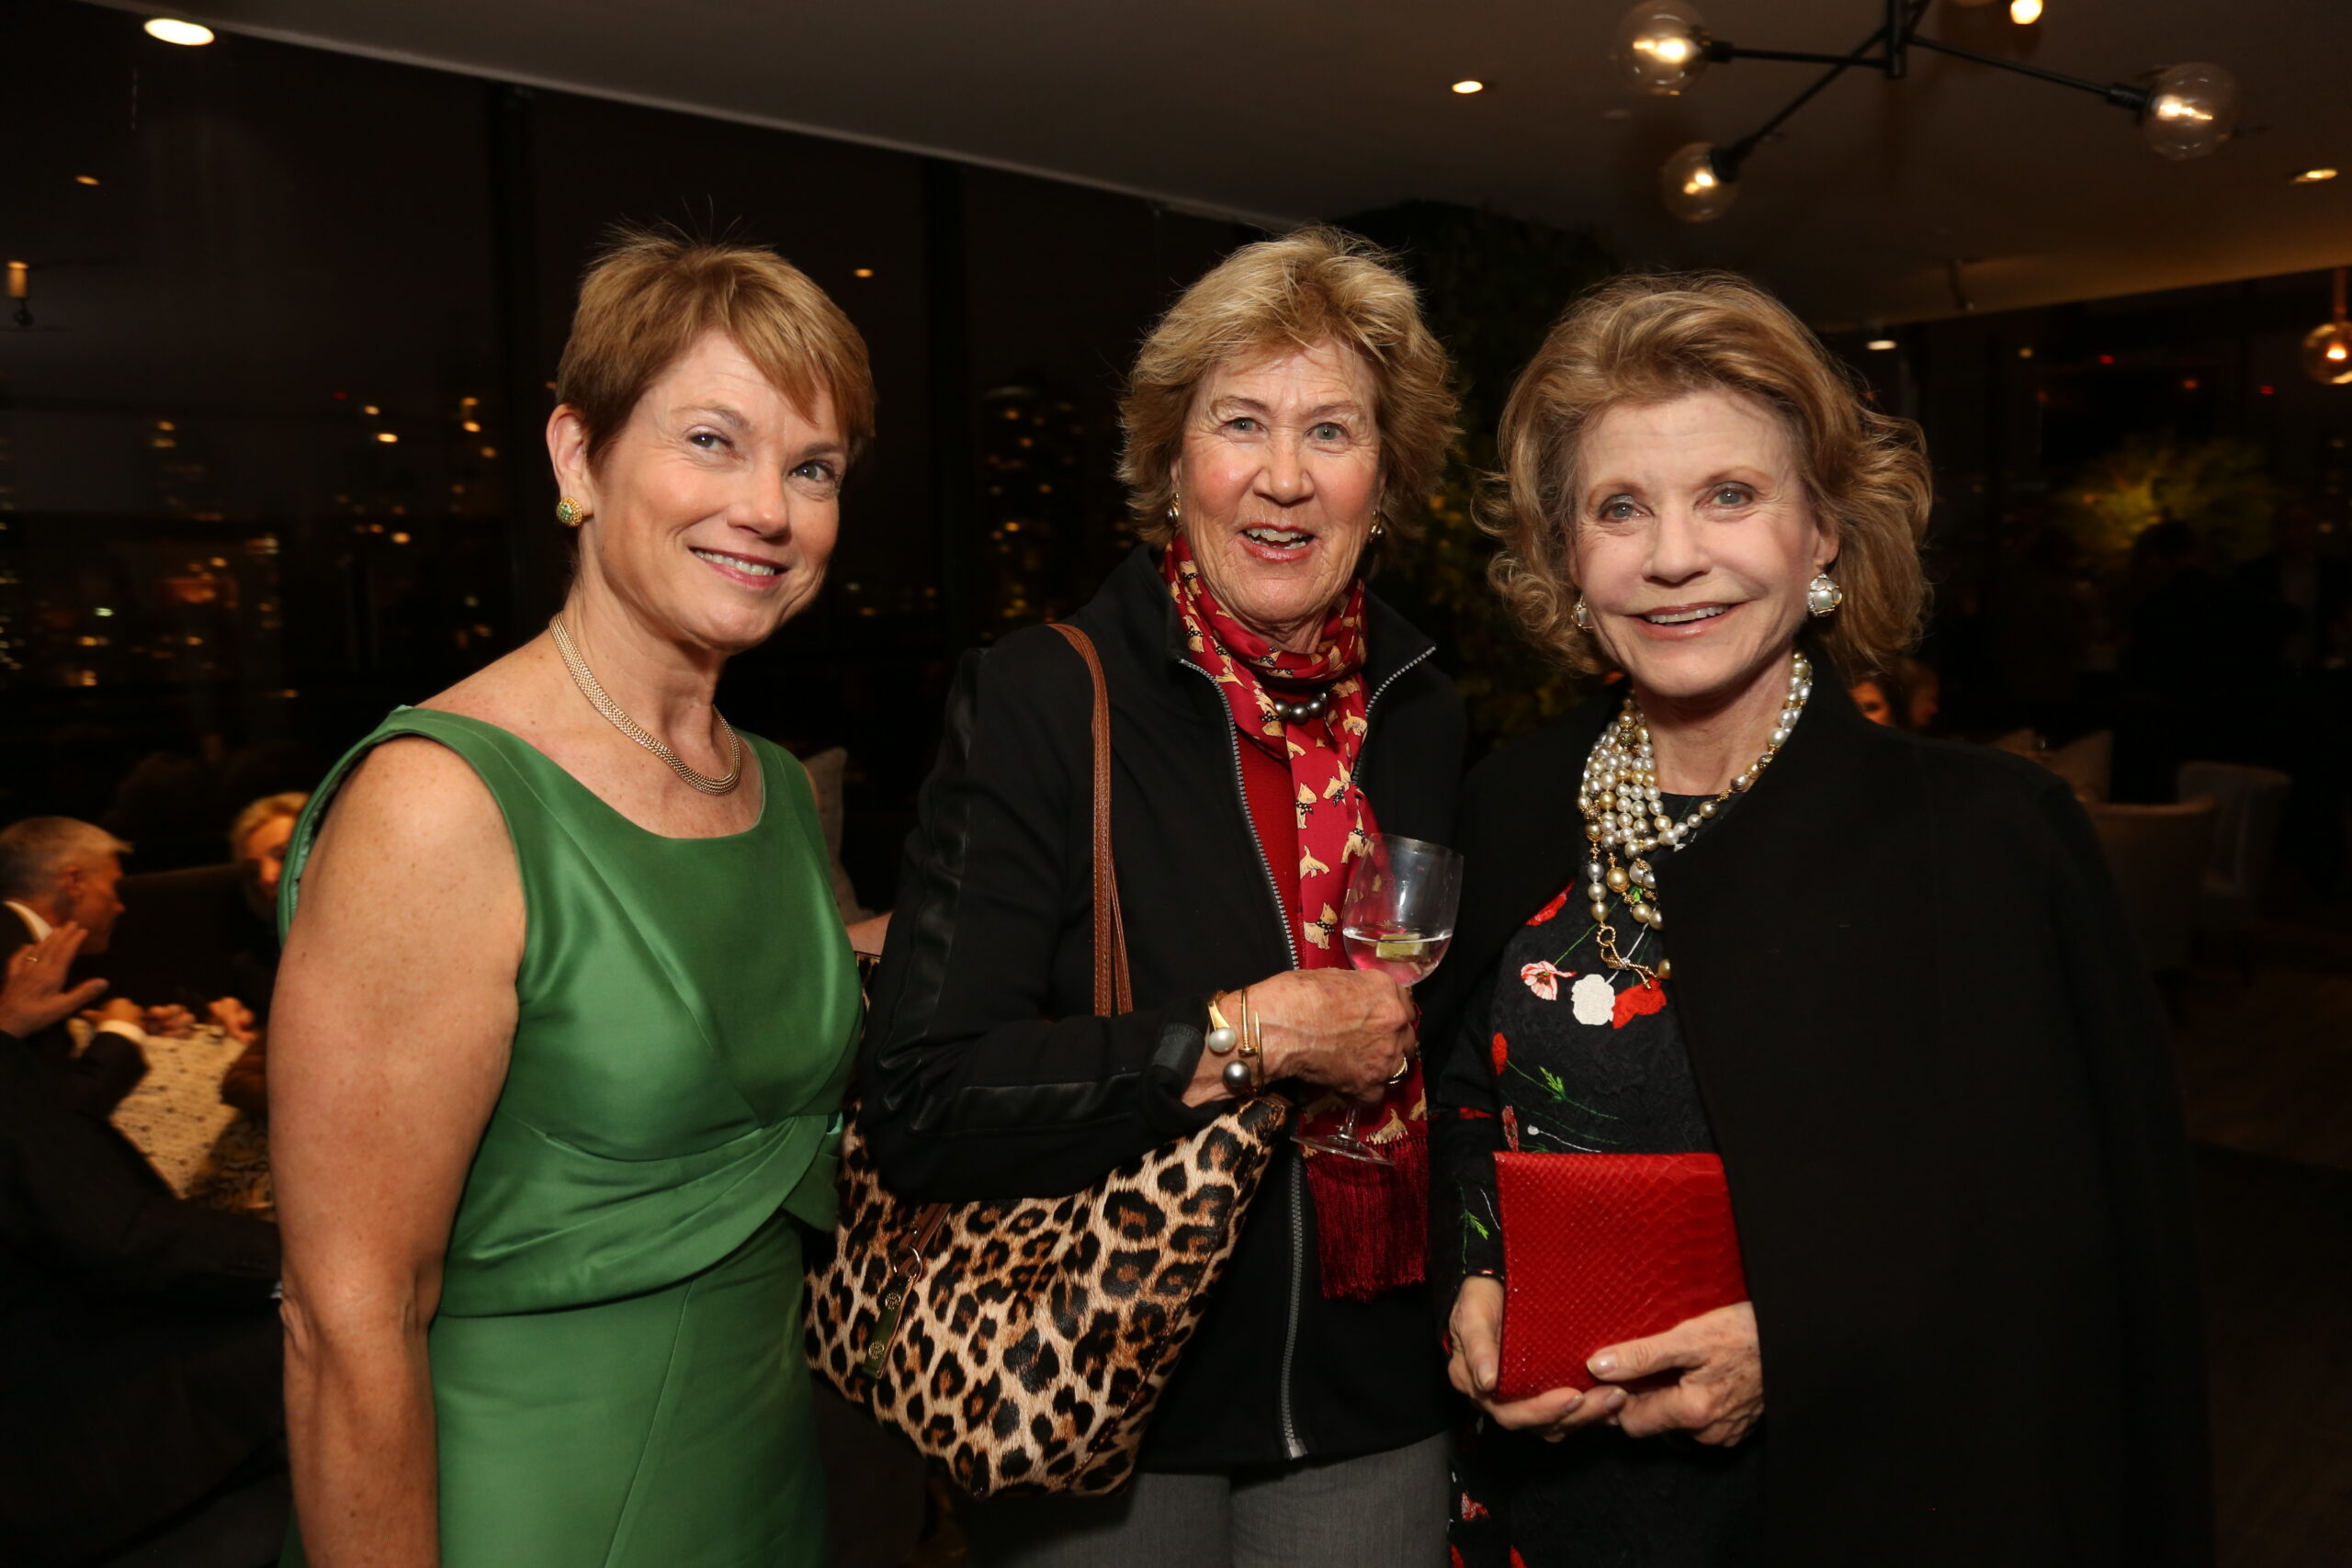 Attendees at AMC's Gift of Love capital campaign launch